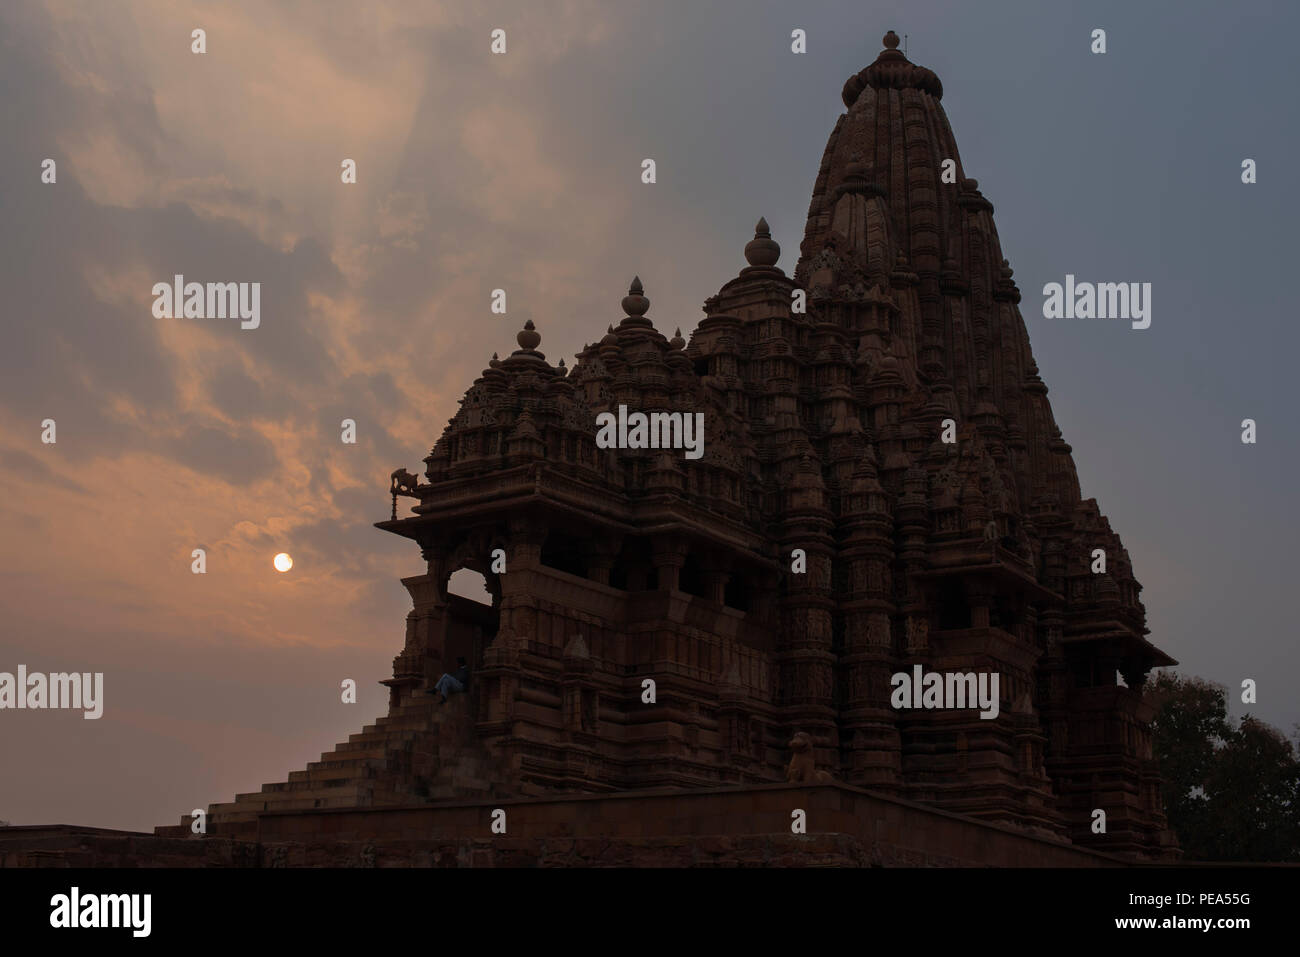 Ancient Kandariya Mahadev Temple with intricate carvings and statues against sunset dedicated to Hindu God Lord Shiva symbolizing power and strength - Stock Image